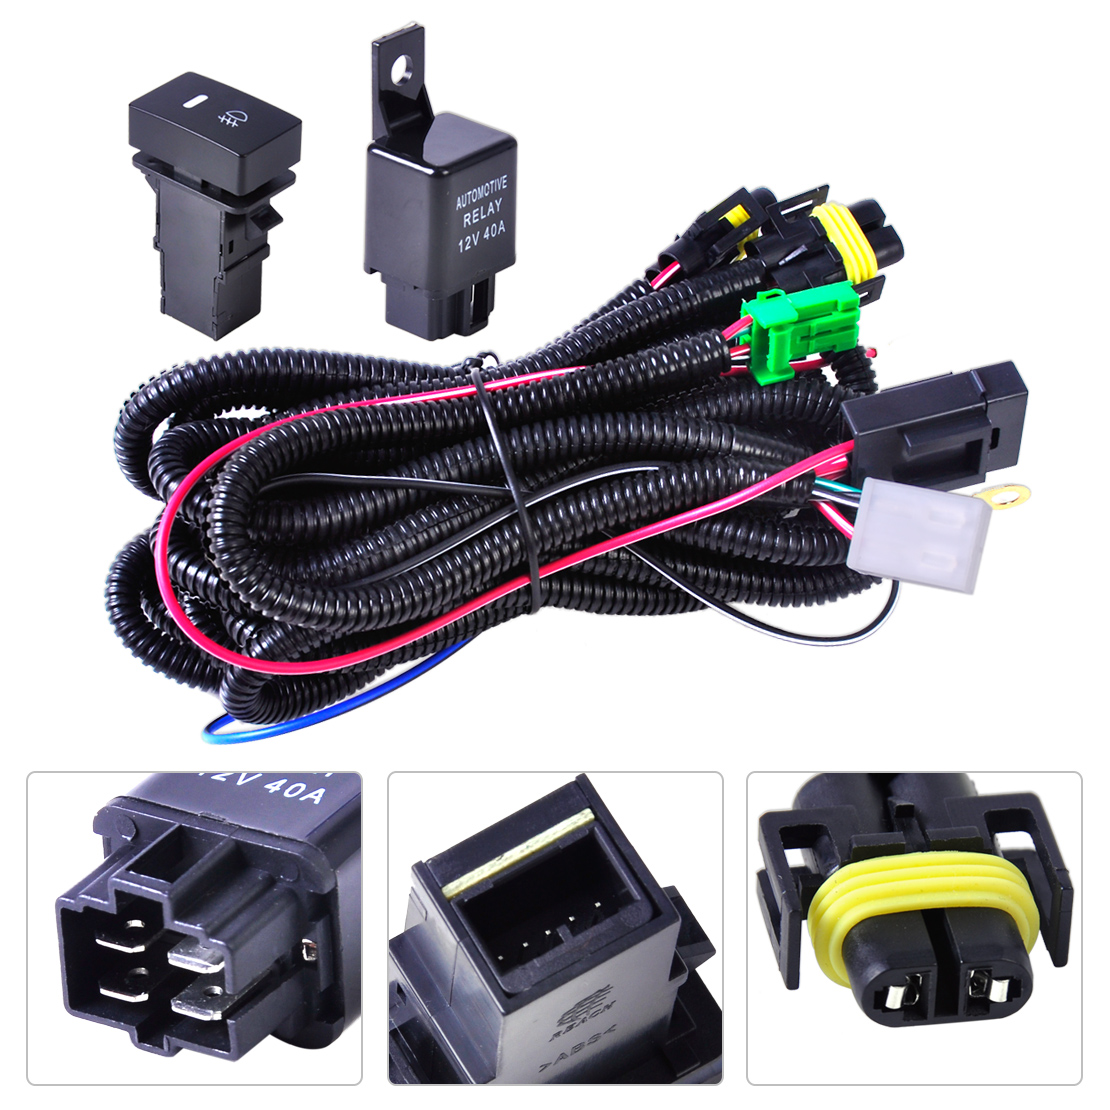 hight resolution of wiring harness sockets switch for h11 fog light lamp ford focus acura nissan 728360607010